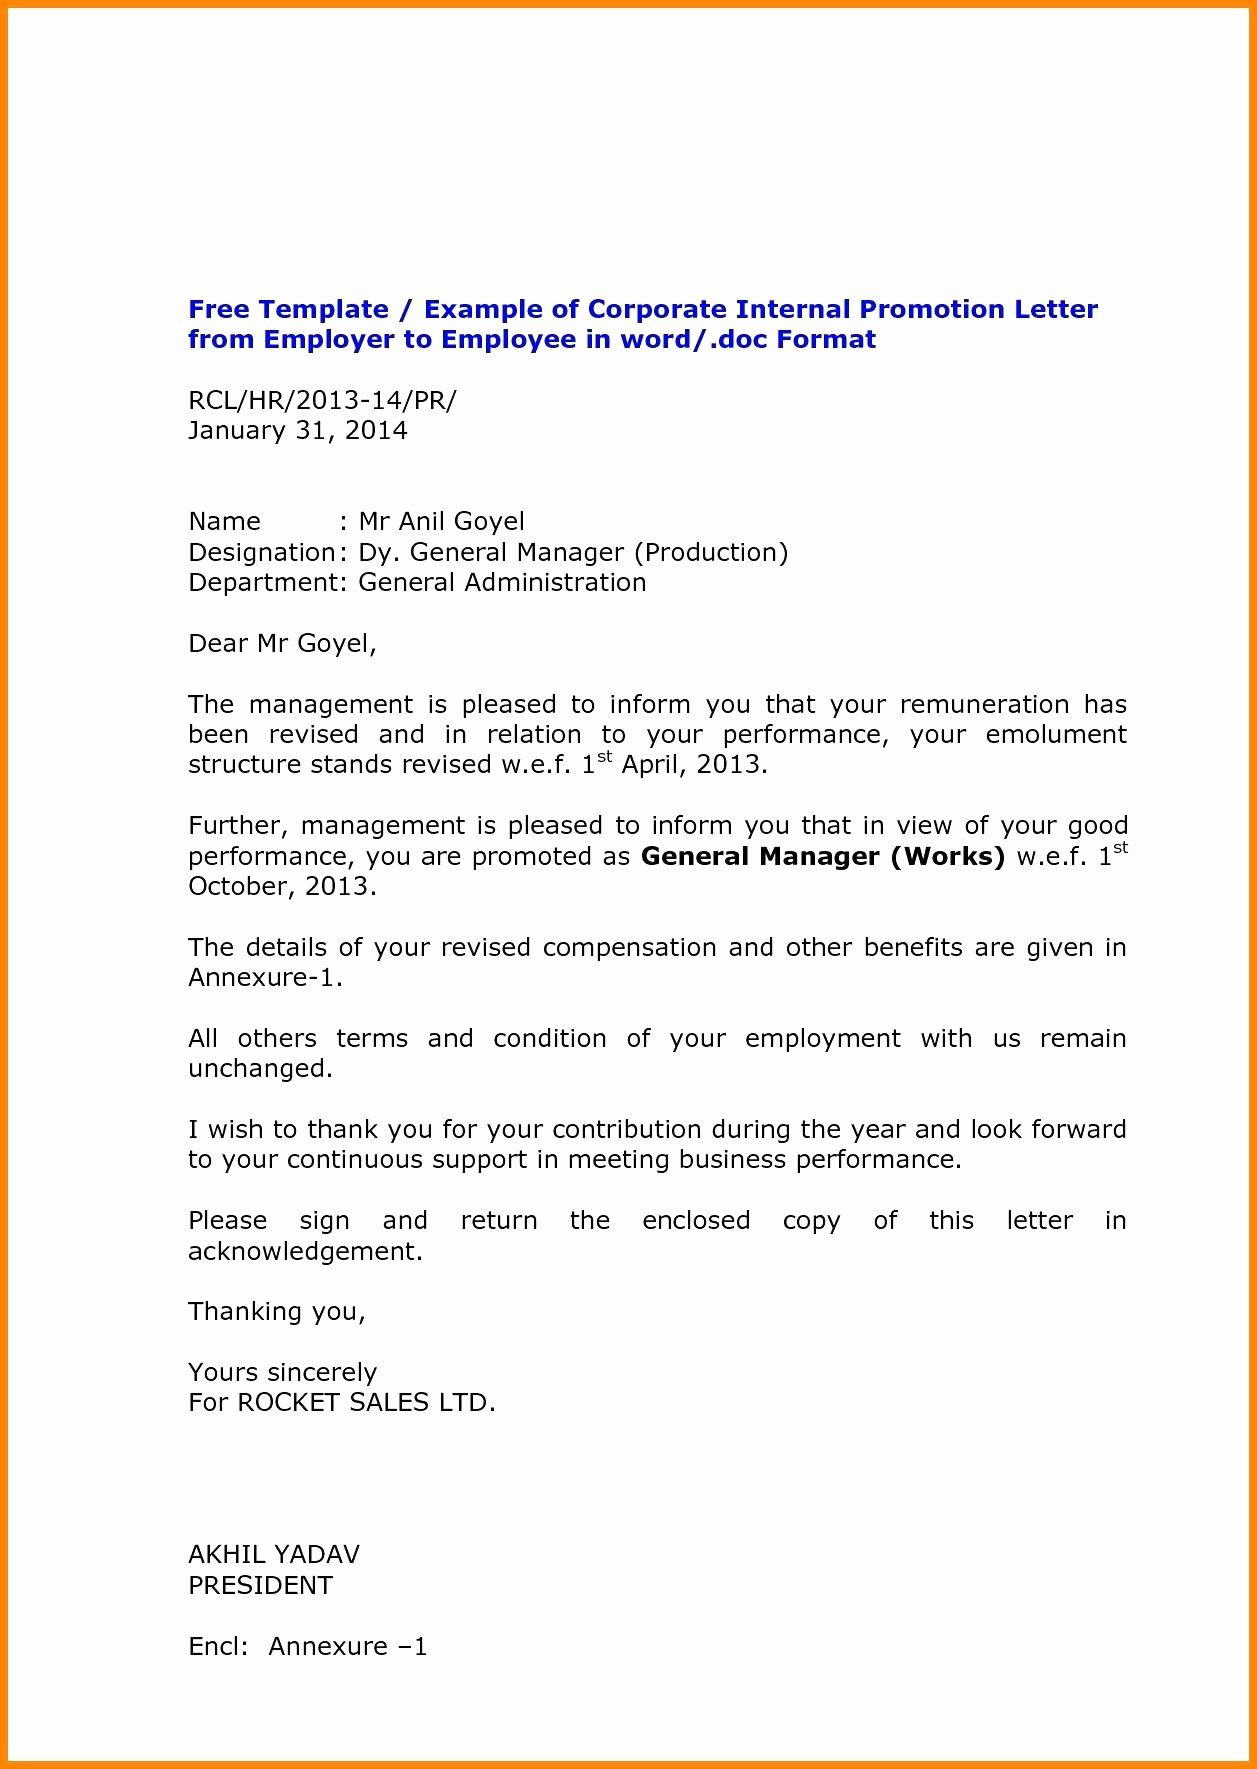 Employee Promotion Announcement Email Sample Beautiful Employee Promotion Announcement Samples Pics – Job